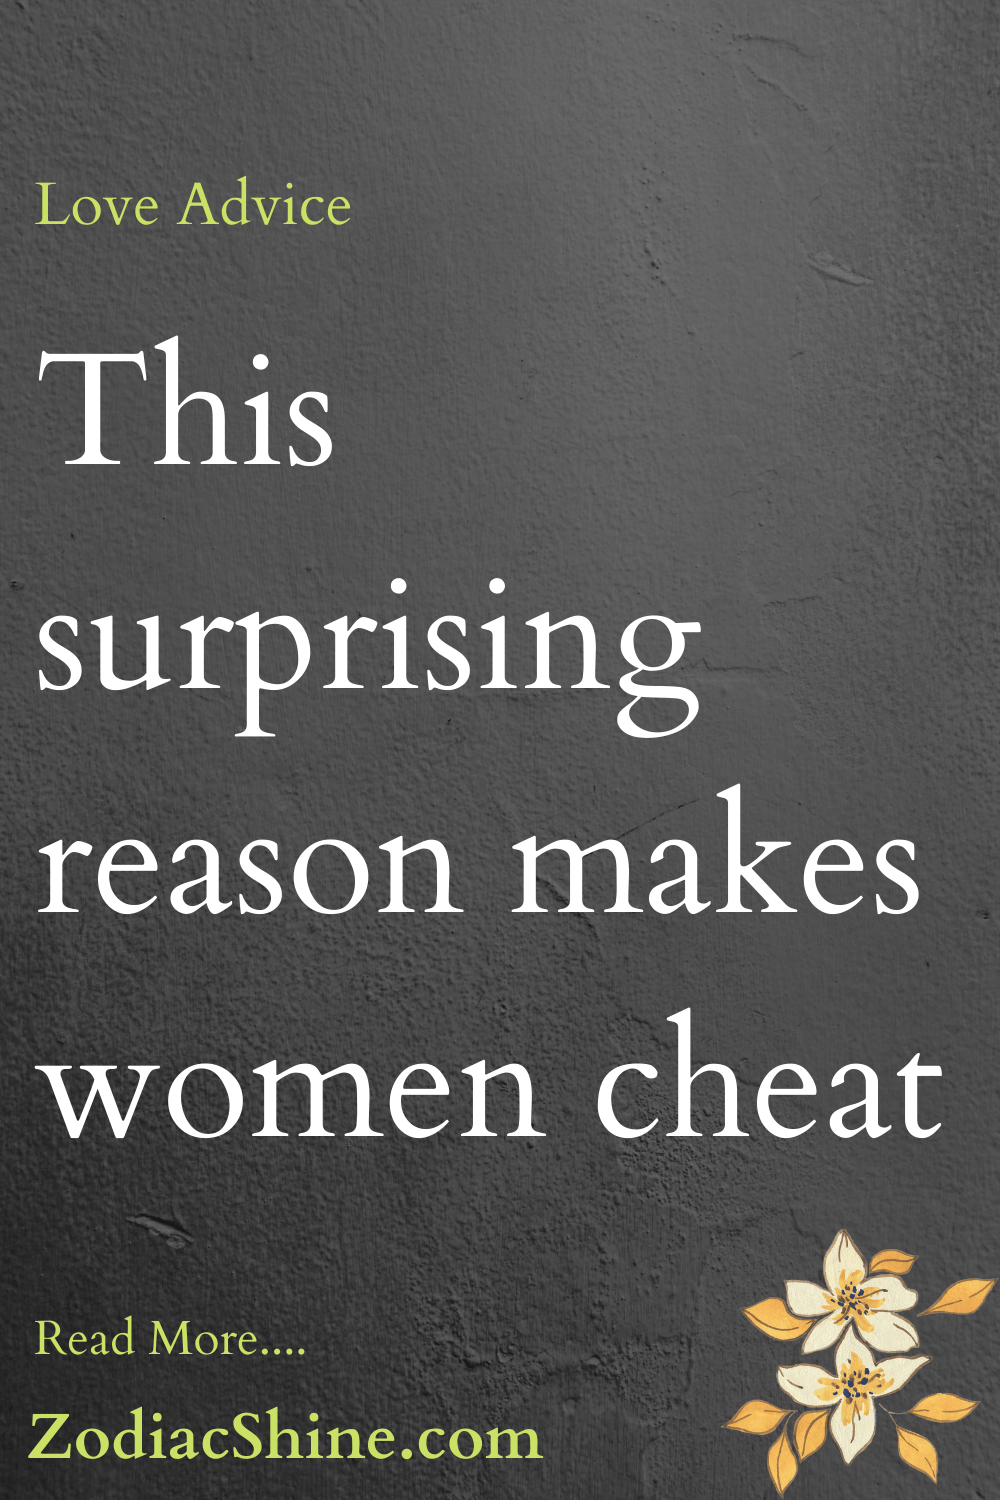 This surprising reason makes women cheat